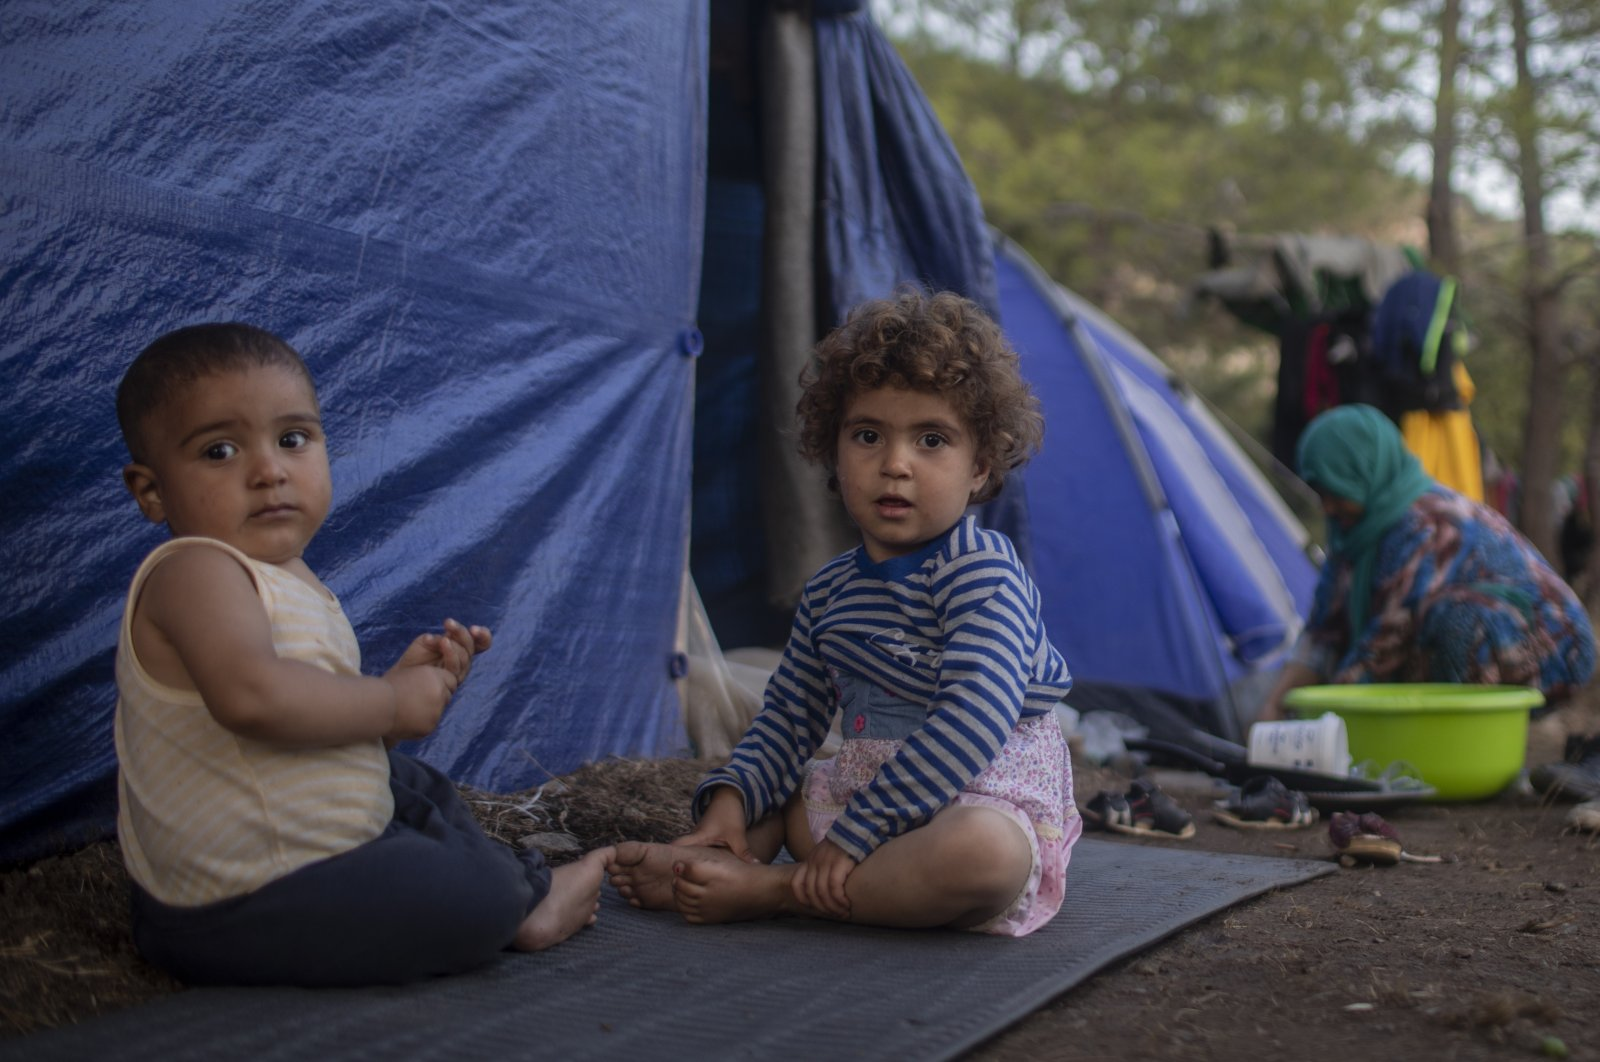 Syrian children play outside a makeshift tent near the refugee and migrant camp on the Greek island of Samos, Sept. 25, 2019. (AP File Photo)